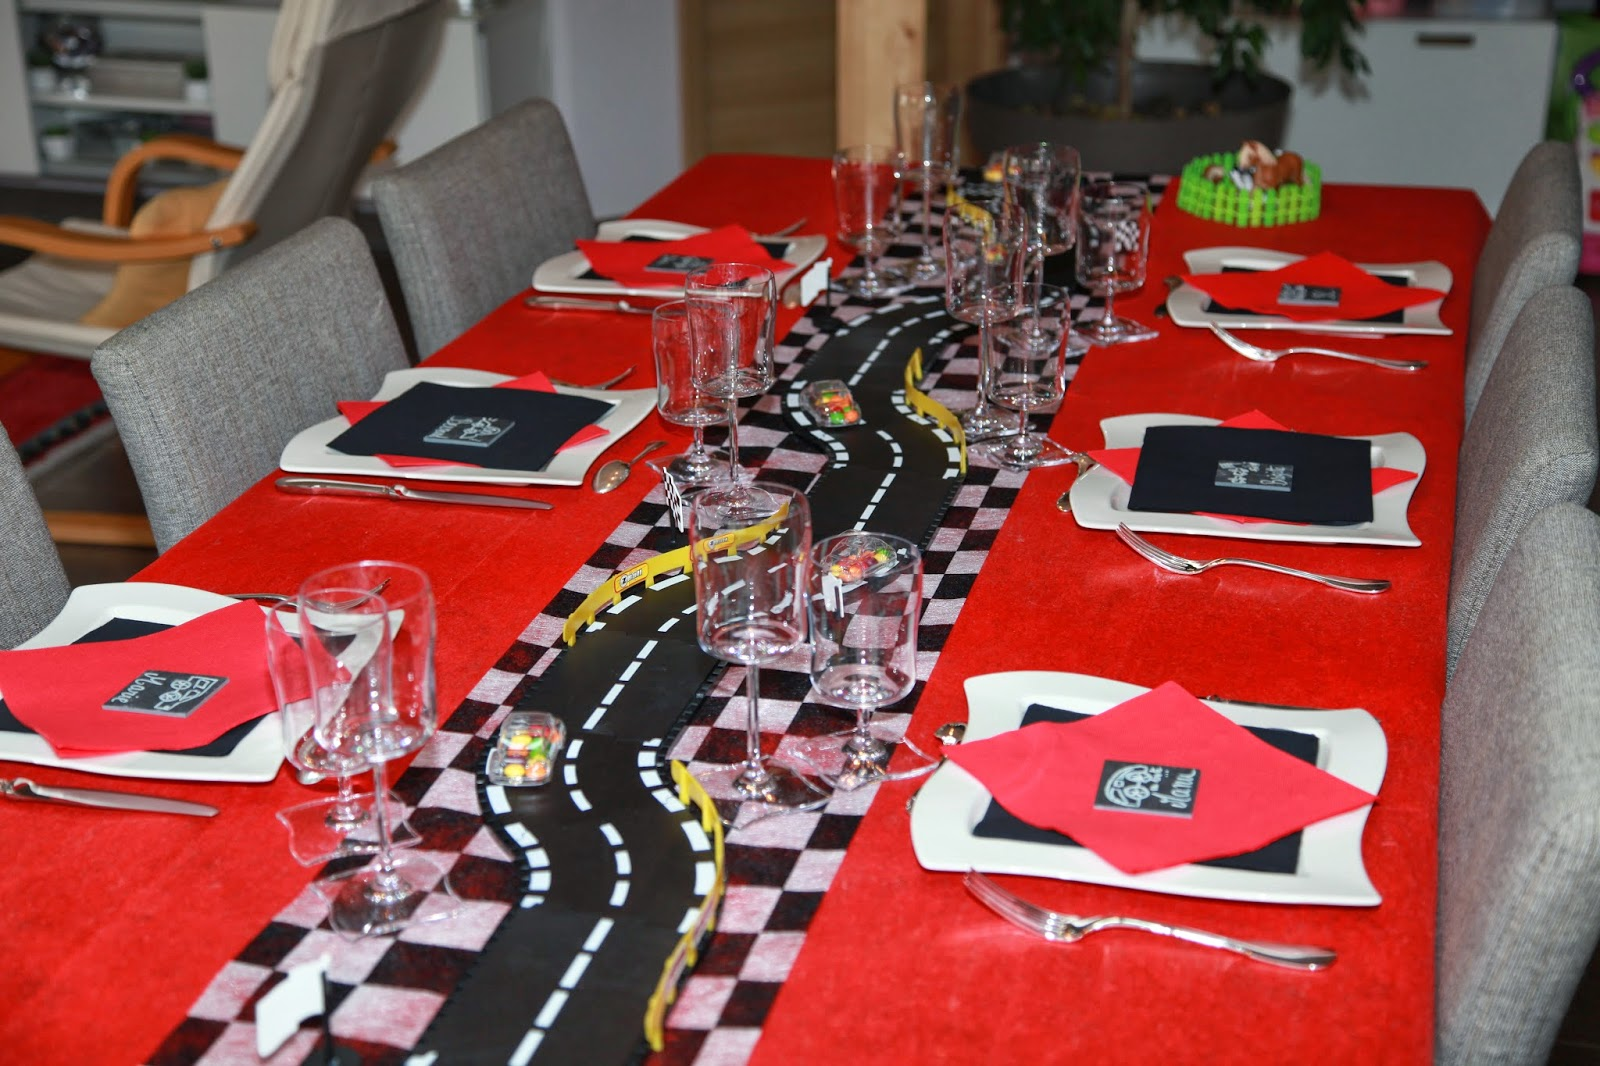 deco de table anniversaire theme voiture table de lit. Black Bedroom Furniture Sets. Home Design Ideas